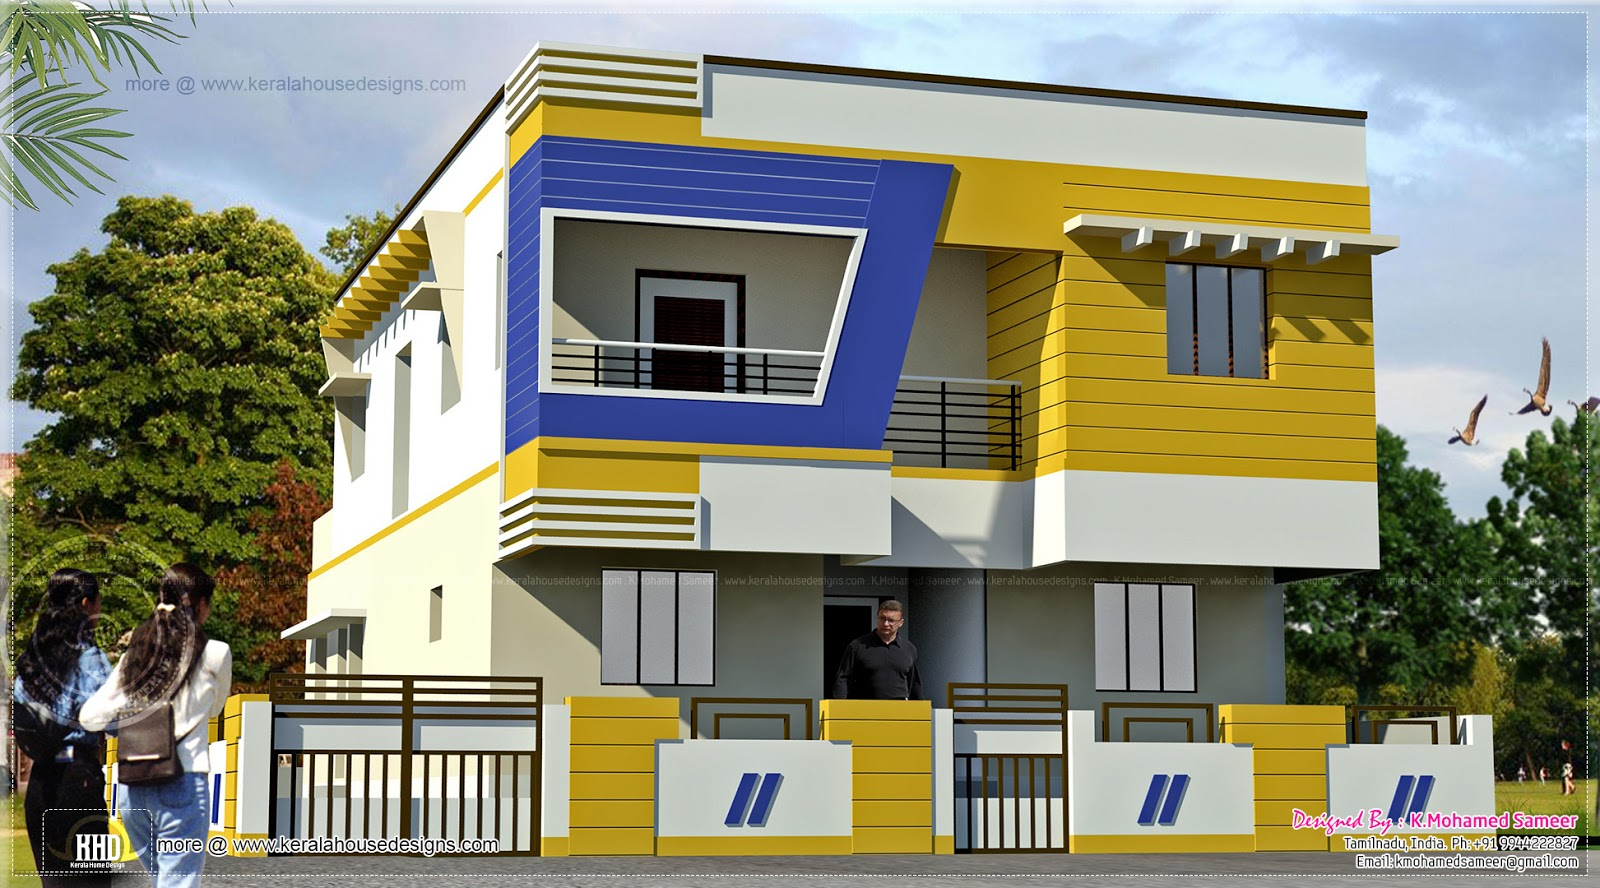 Modern tamilnadu style house design kerala home design for Home models in tamilnadu pictures